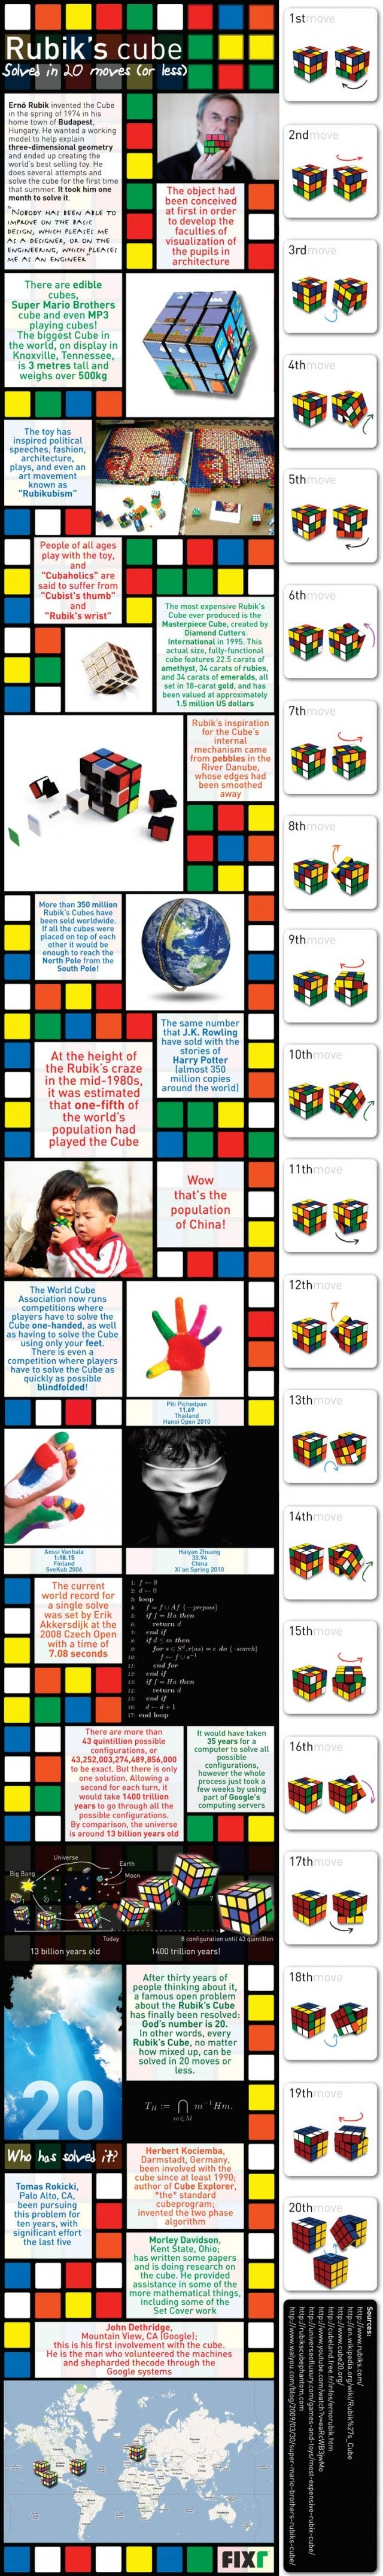 Rubik's Cube (solved in 20 moves or less) [infographic]